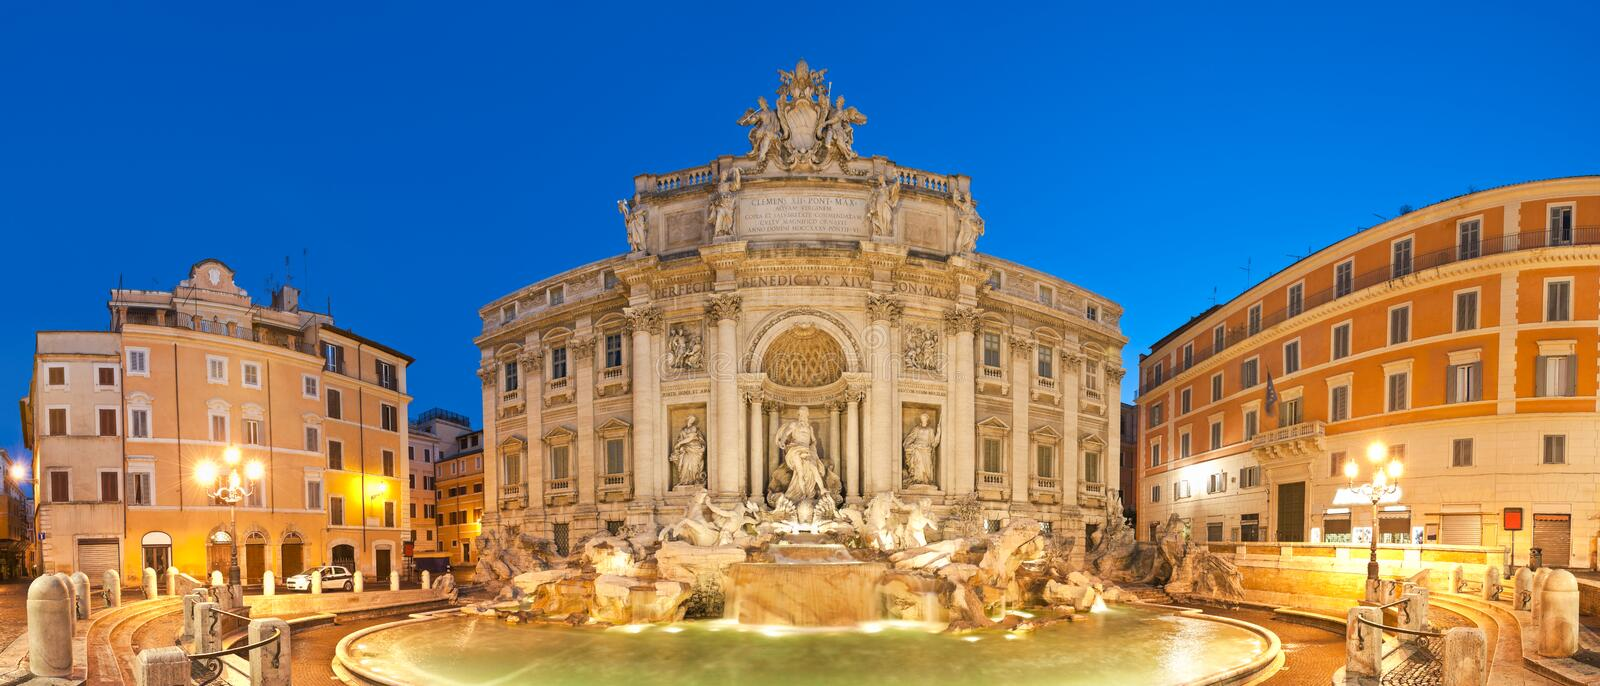 Trevi Fountain, Rome. Stunningly ornate Trevi Fountain (1762) illuminated at night in the heart of Rome. Stitched panoramic image stock images